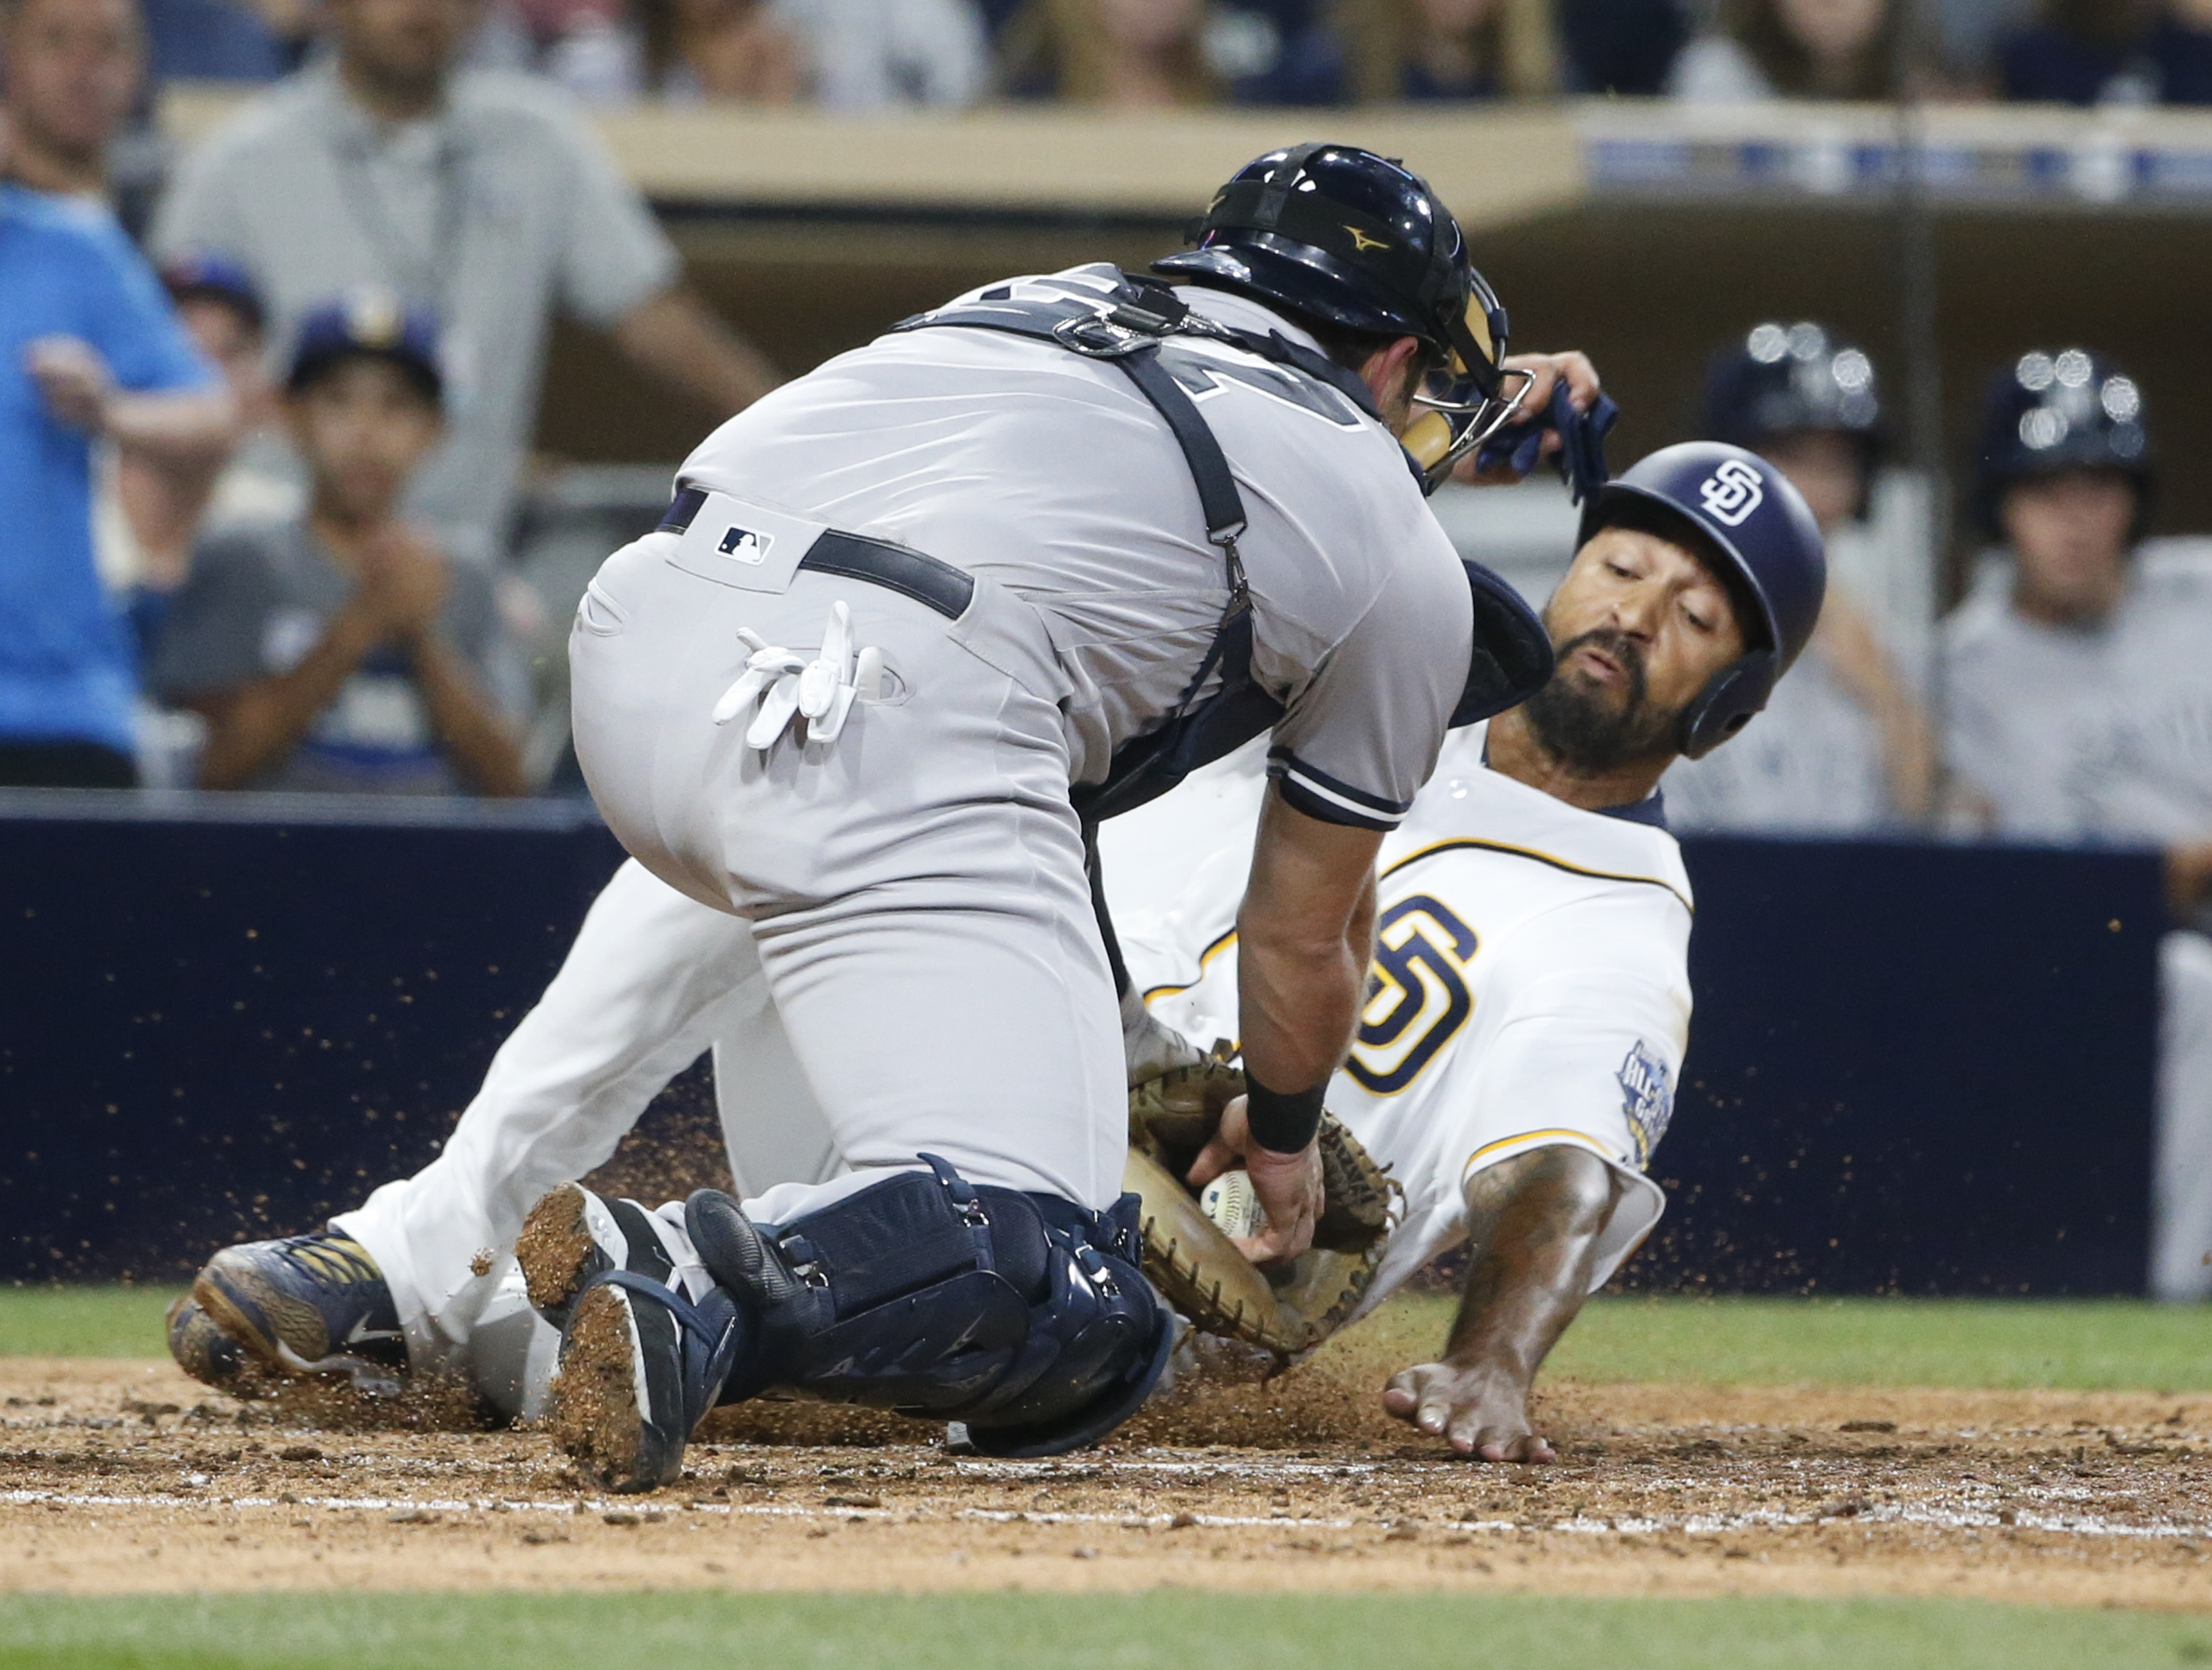 San Diego Padres' Matt Kemp is tagged out by New York Yankees catcher Austin Romine during the sixth inning of a baseball game Saturday, July 2, 2016, in San Diego. (AP Photo/Lenny Ignelzi)